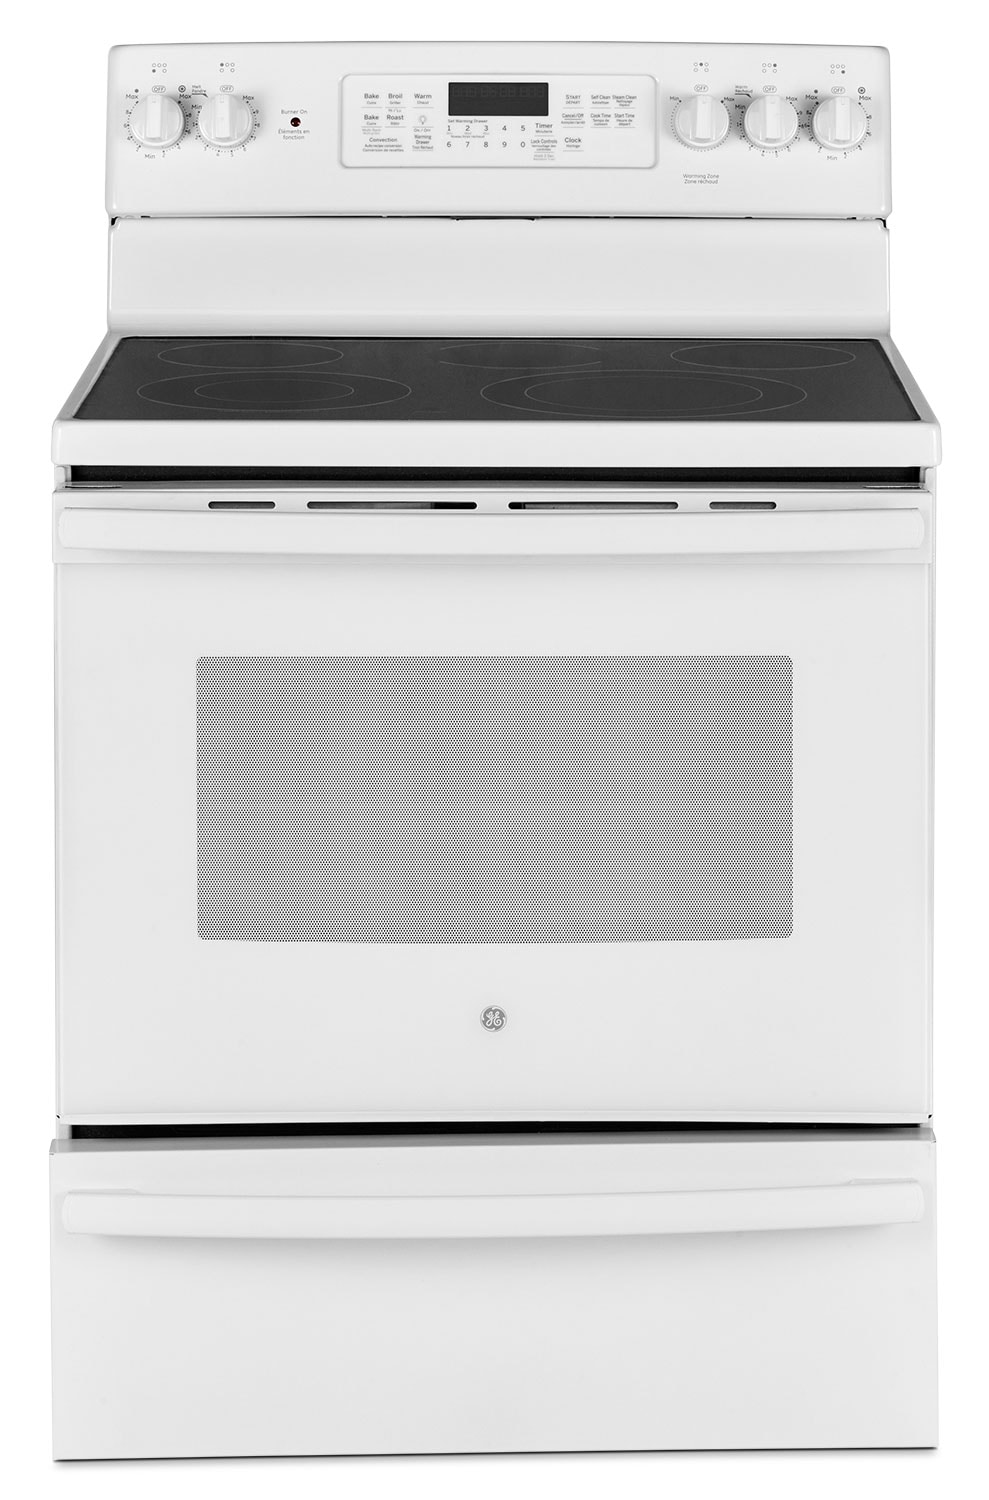 GE 5.0 Cu. Ft. Freestanding Electric Range with Warming Drawer – JCB860DKWW